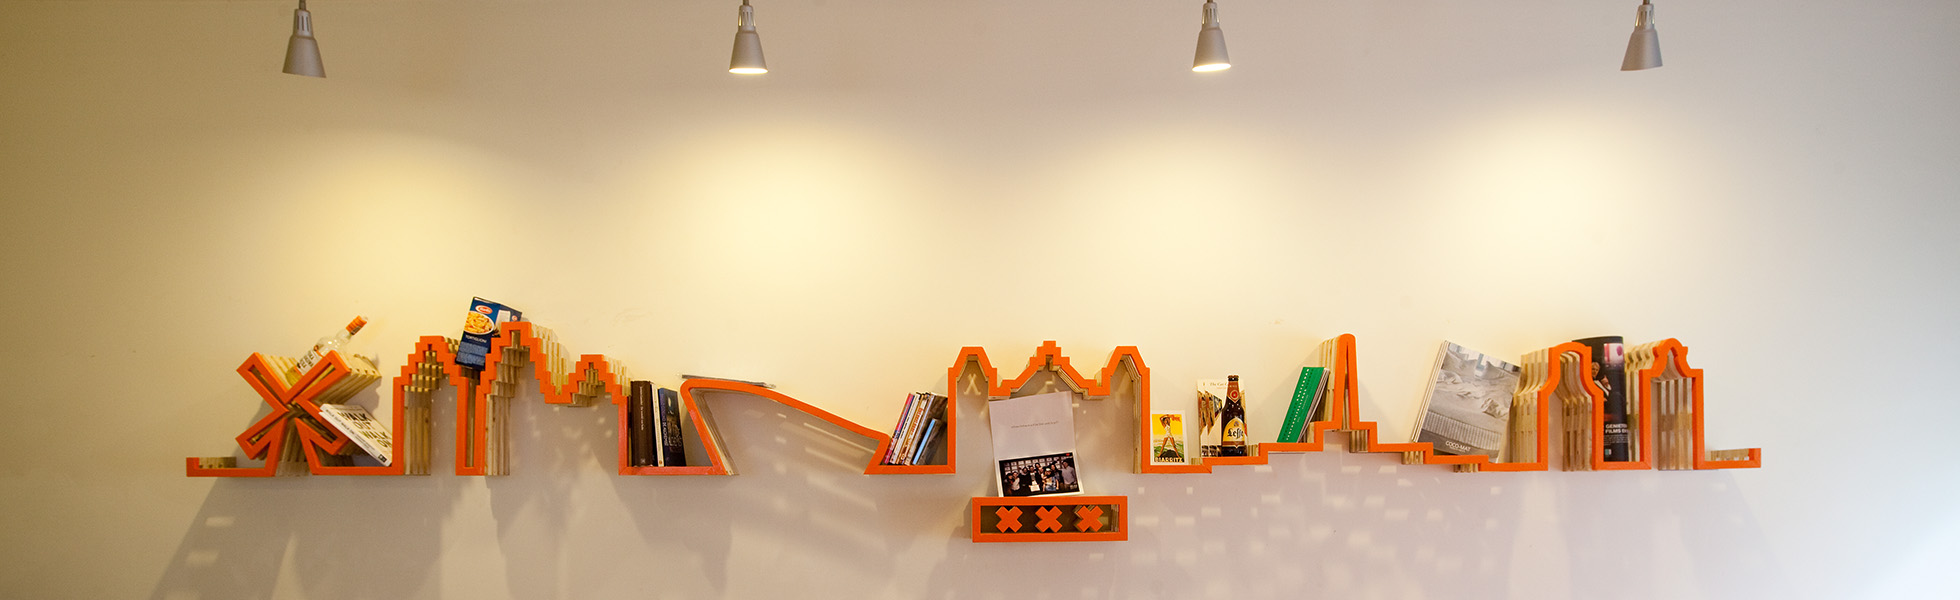 CityHub Amsterdam - skyline shelf